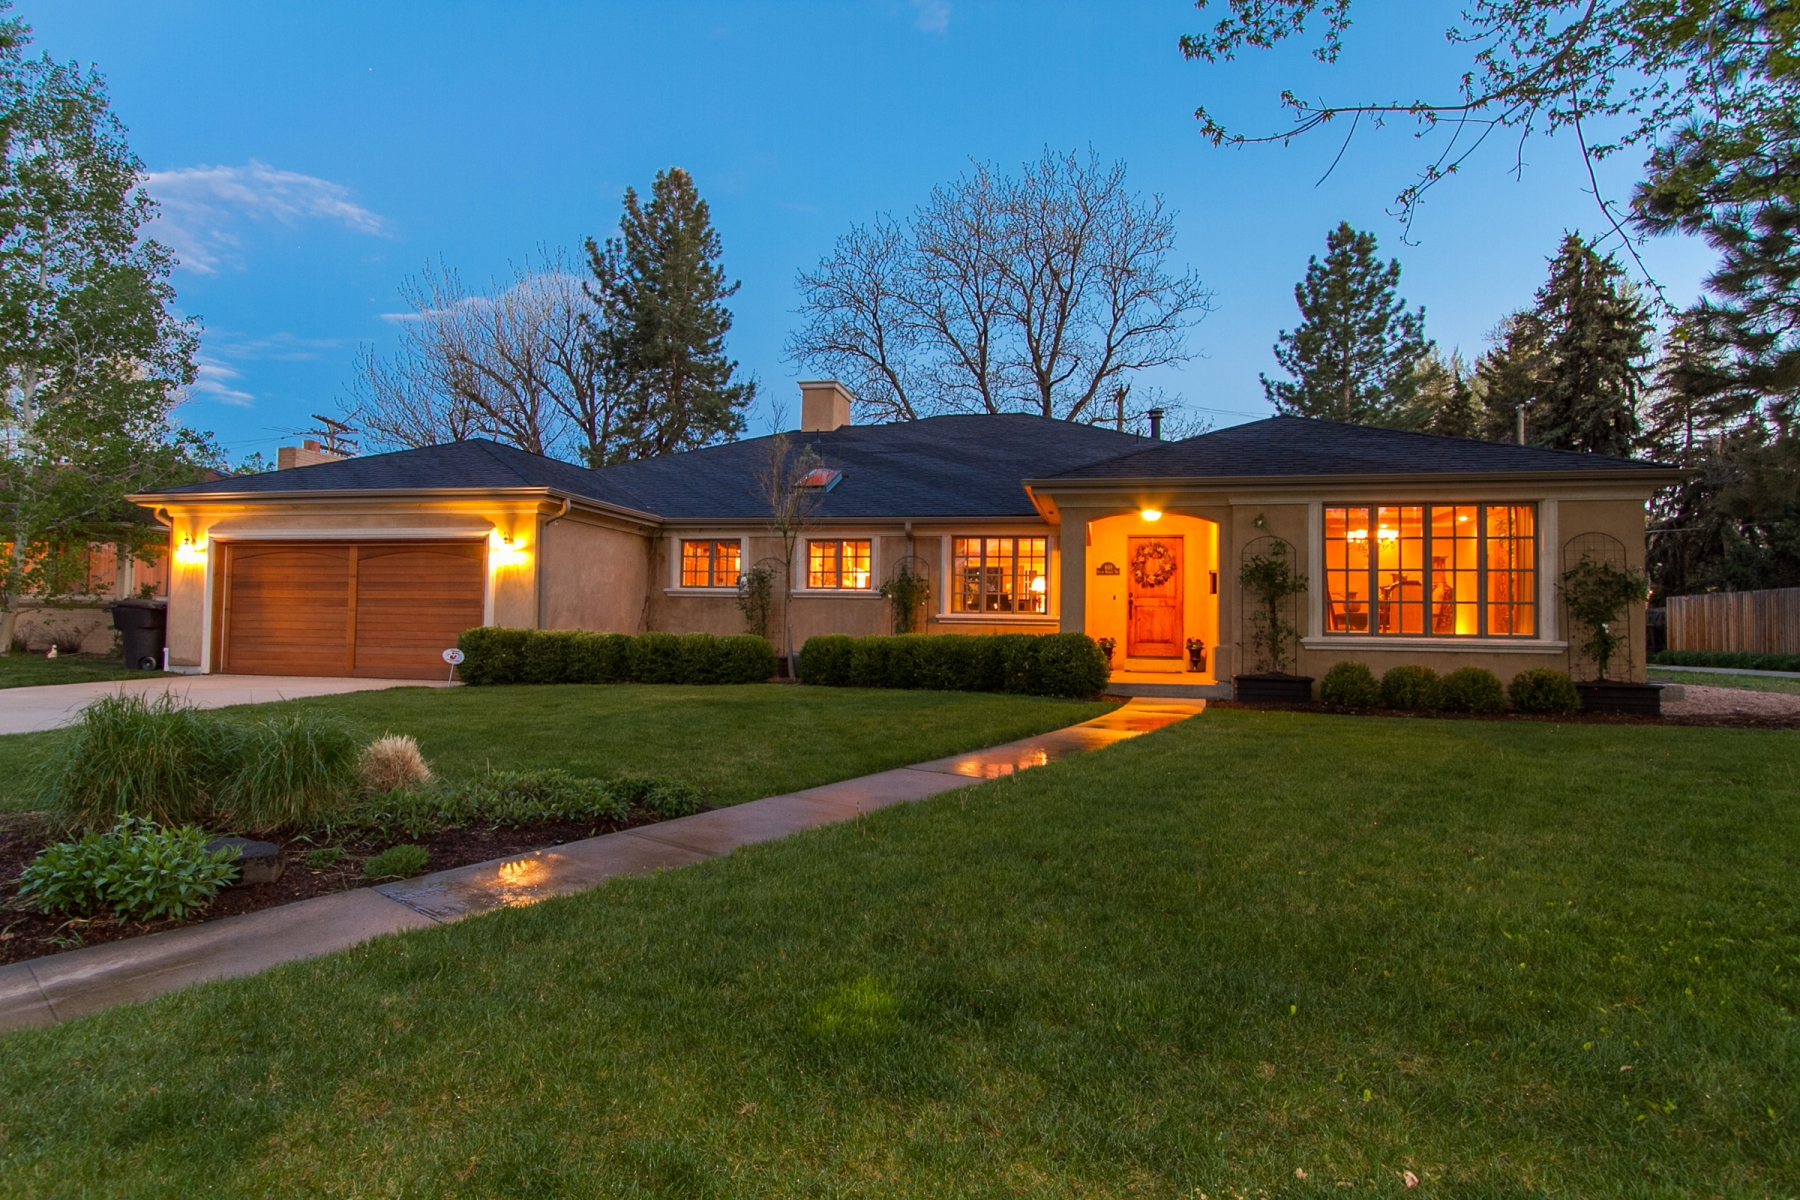 Single Family Home for Sale at A gorgeous remodel with a stunning backyard 601 S Monroe Way Belcaro, Denver, Colorado 80209 United States